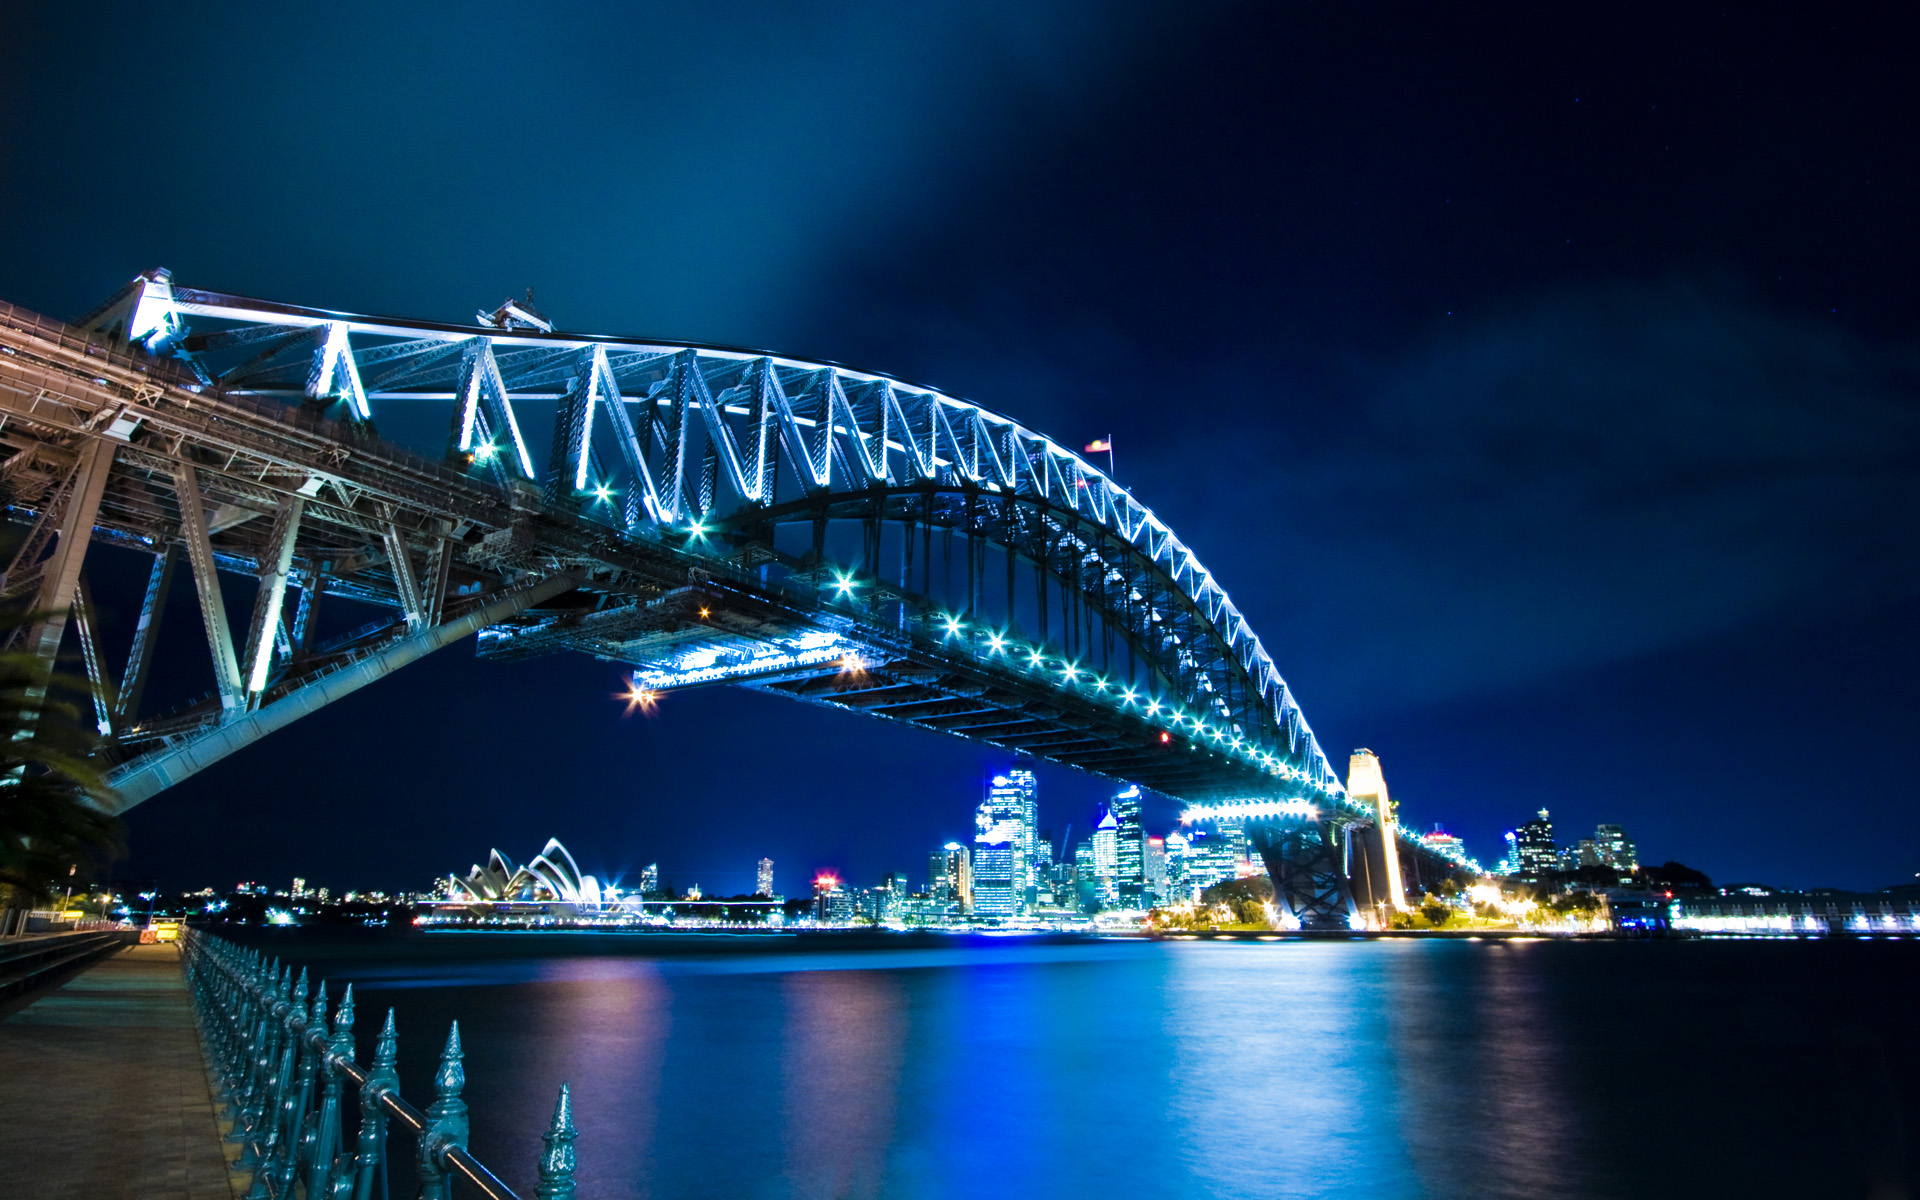 Sydney Harbour Bridge 3606.93 Kb